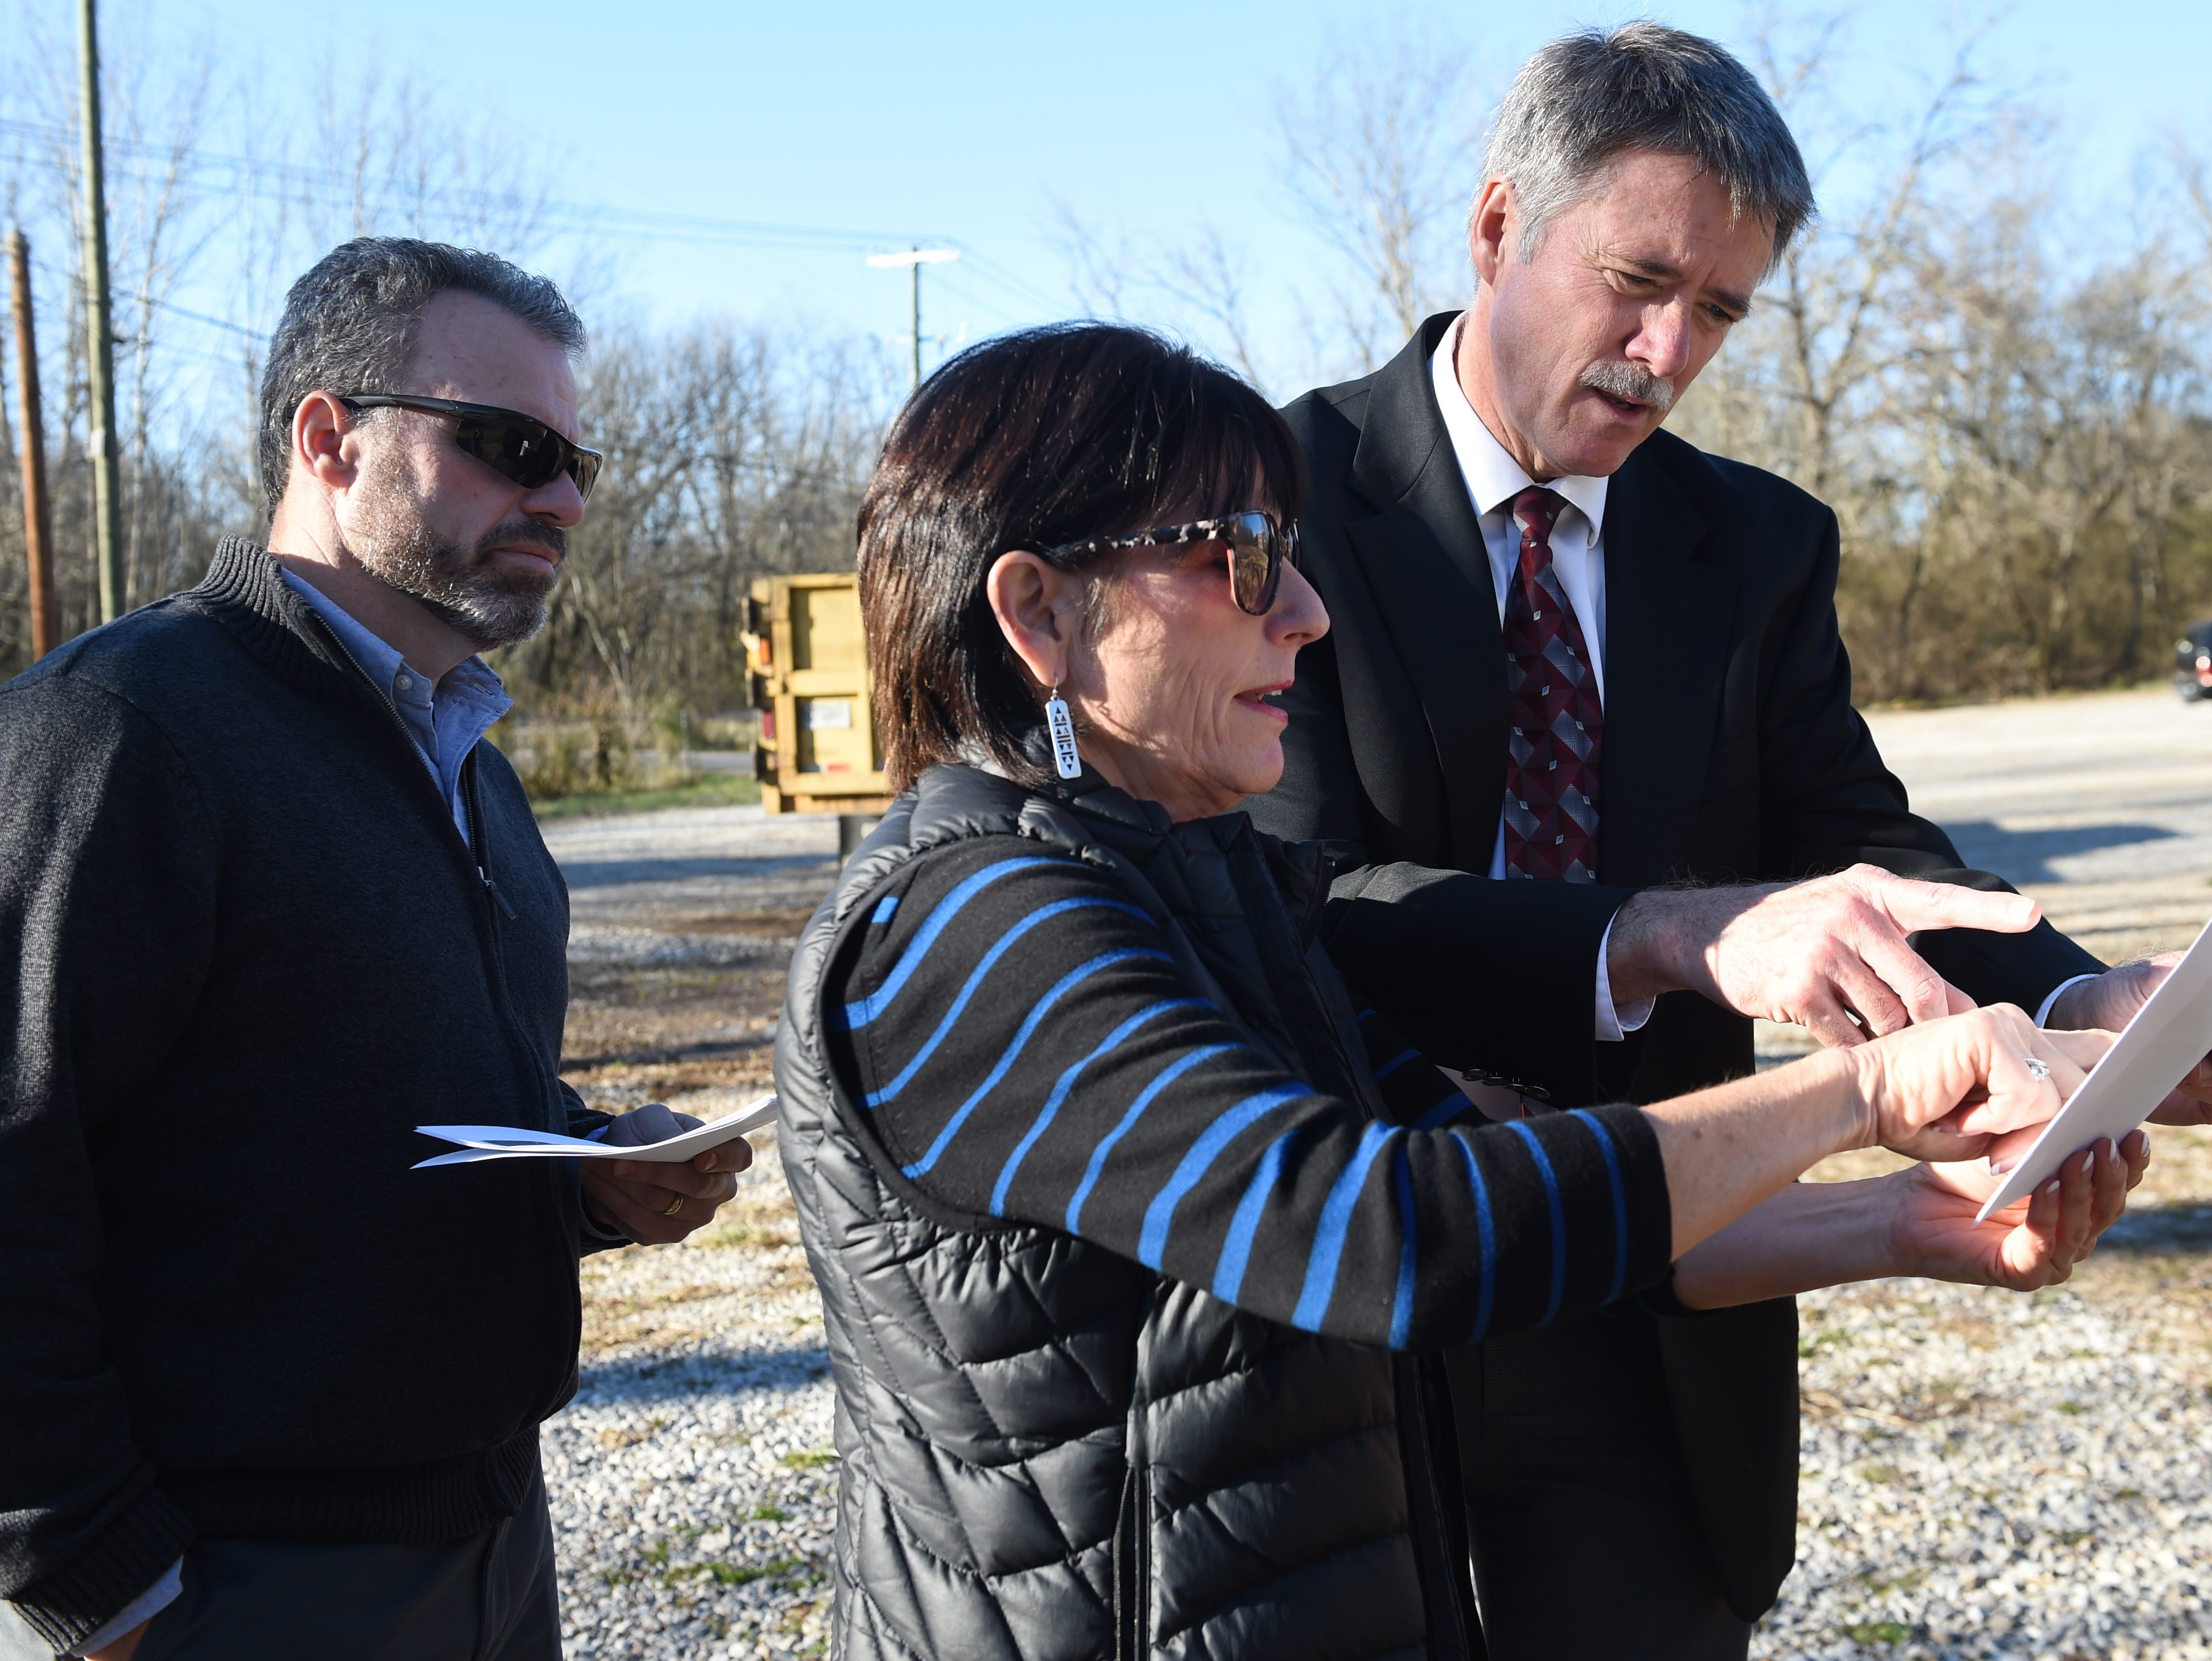 Legacy Parks Executive Director Carol Evans, center,  shows board members Doug Bataille, left, Senior Director, Knox County Parks & Recreation, and Joe Walsh, Director of Parks & Recreation, City of Knoxville, around the Wood property at 1516 Taylor Rd., where six miles of new trails with be constructed, Thursday, Jan. 14, 2016.